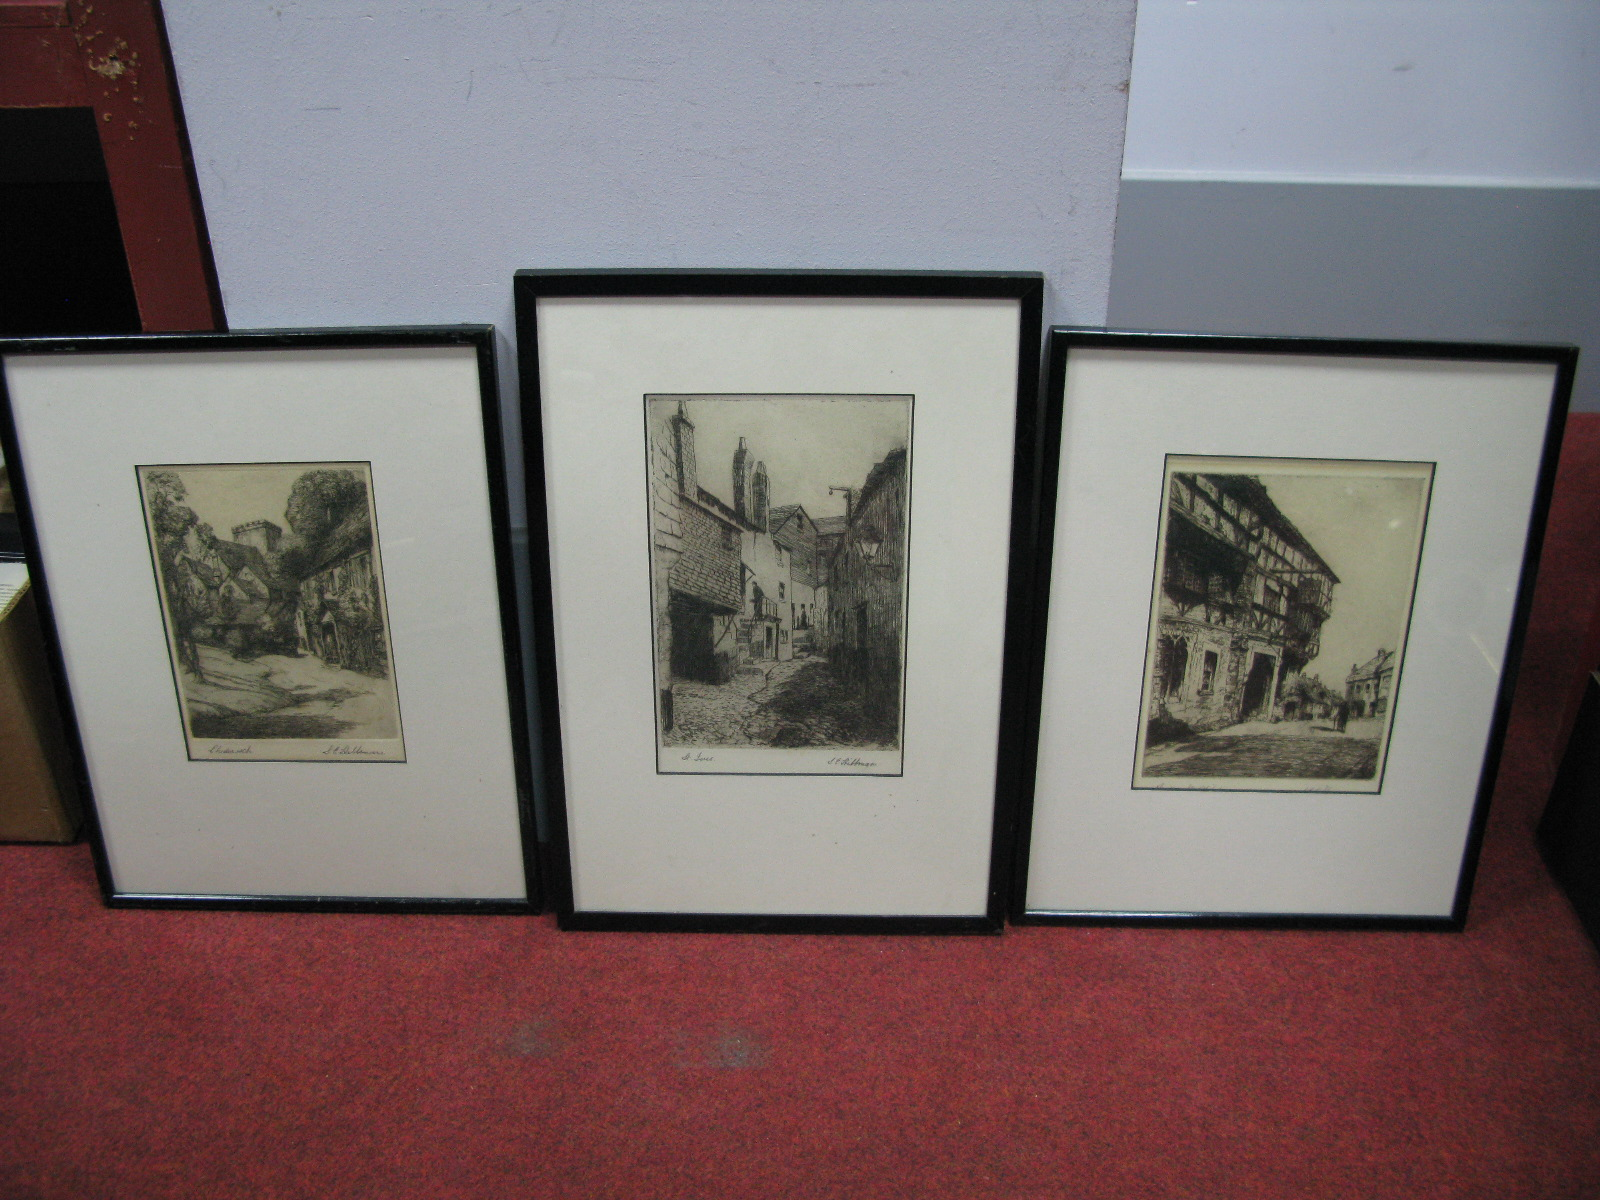 Lot 1052 - Two South East Asian (?) Souvenir Prints, on material, depicting rural life, (each 44.5 x 40cm ),